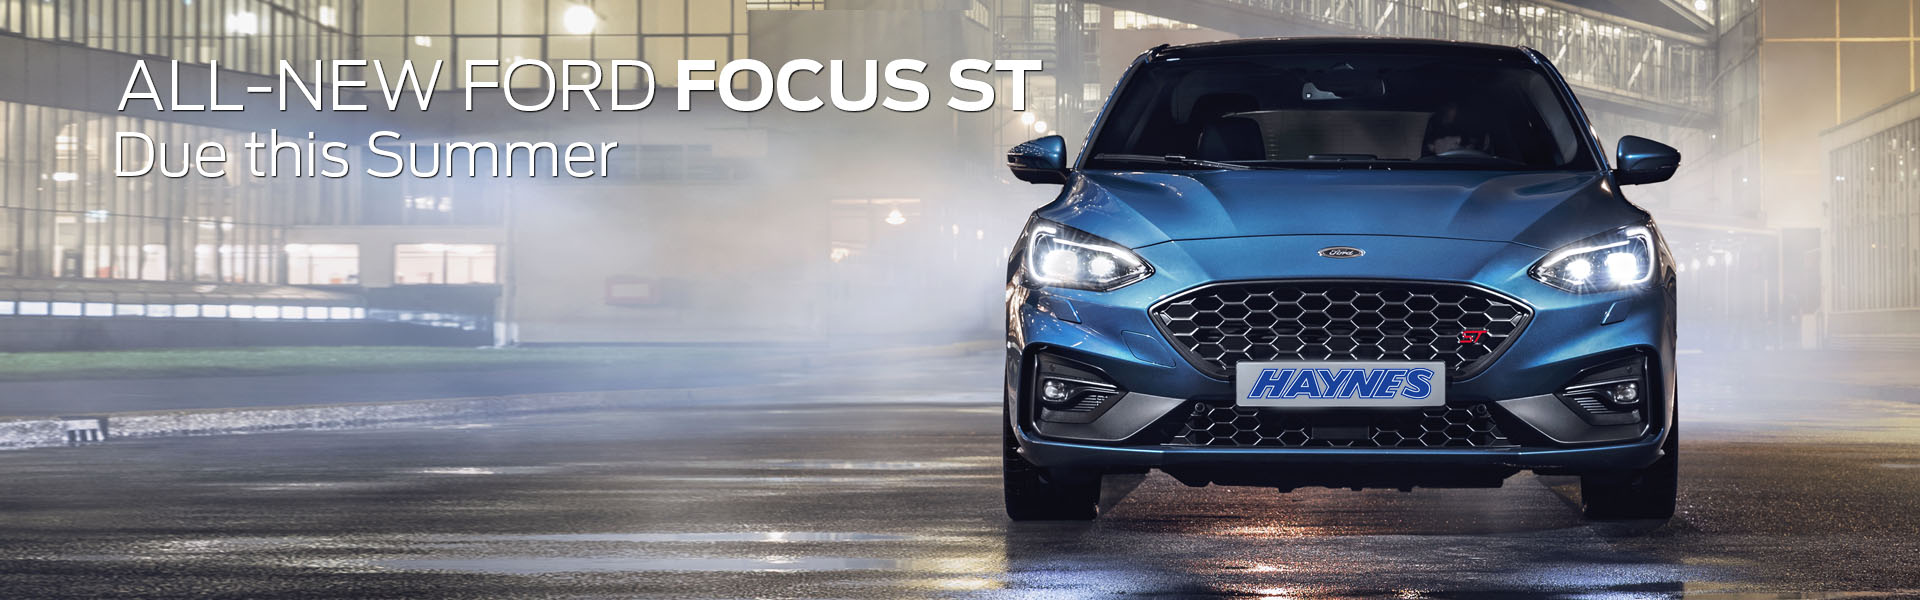 2019-FocusST-Wide-Header.jpg